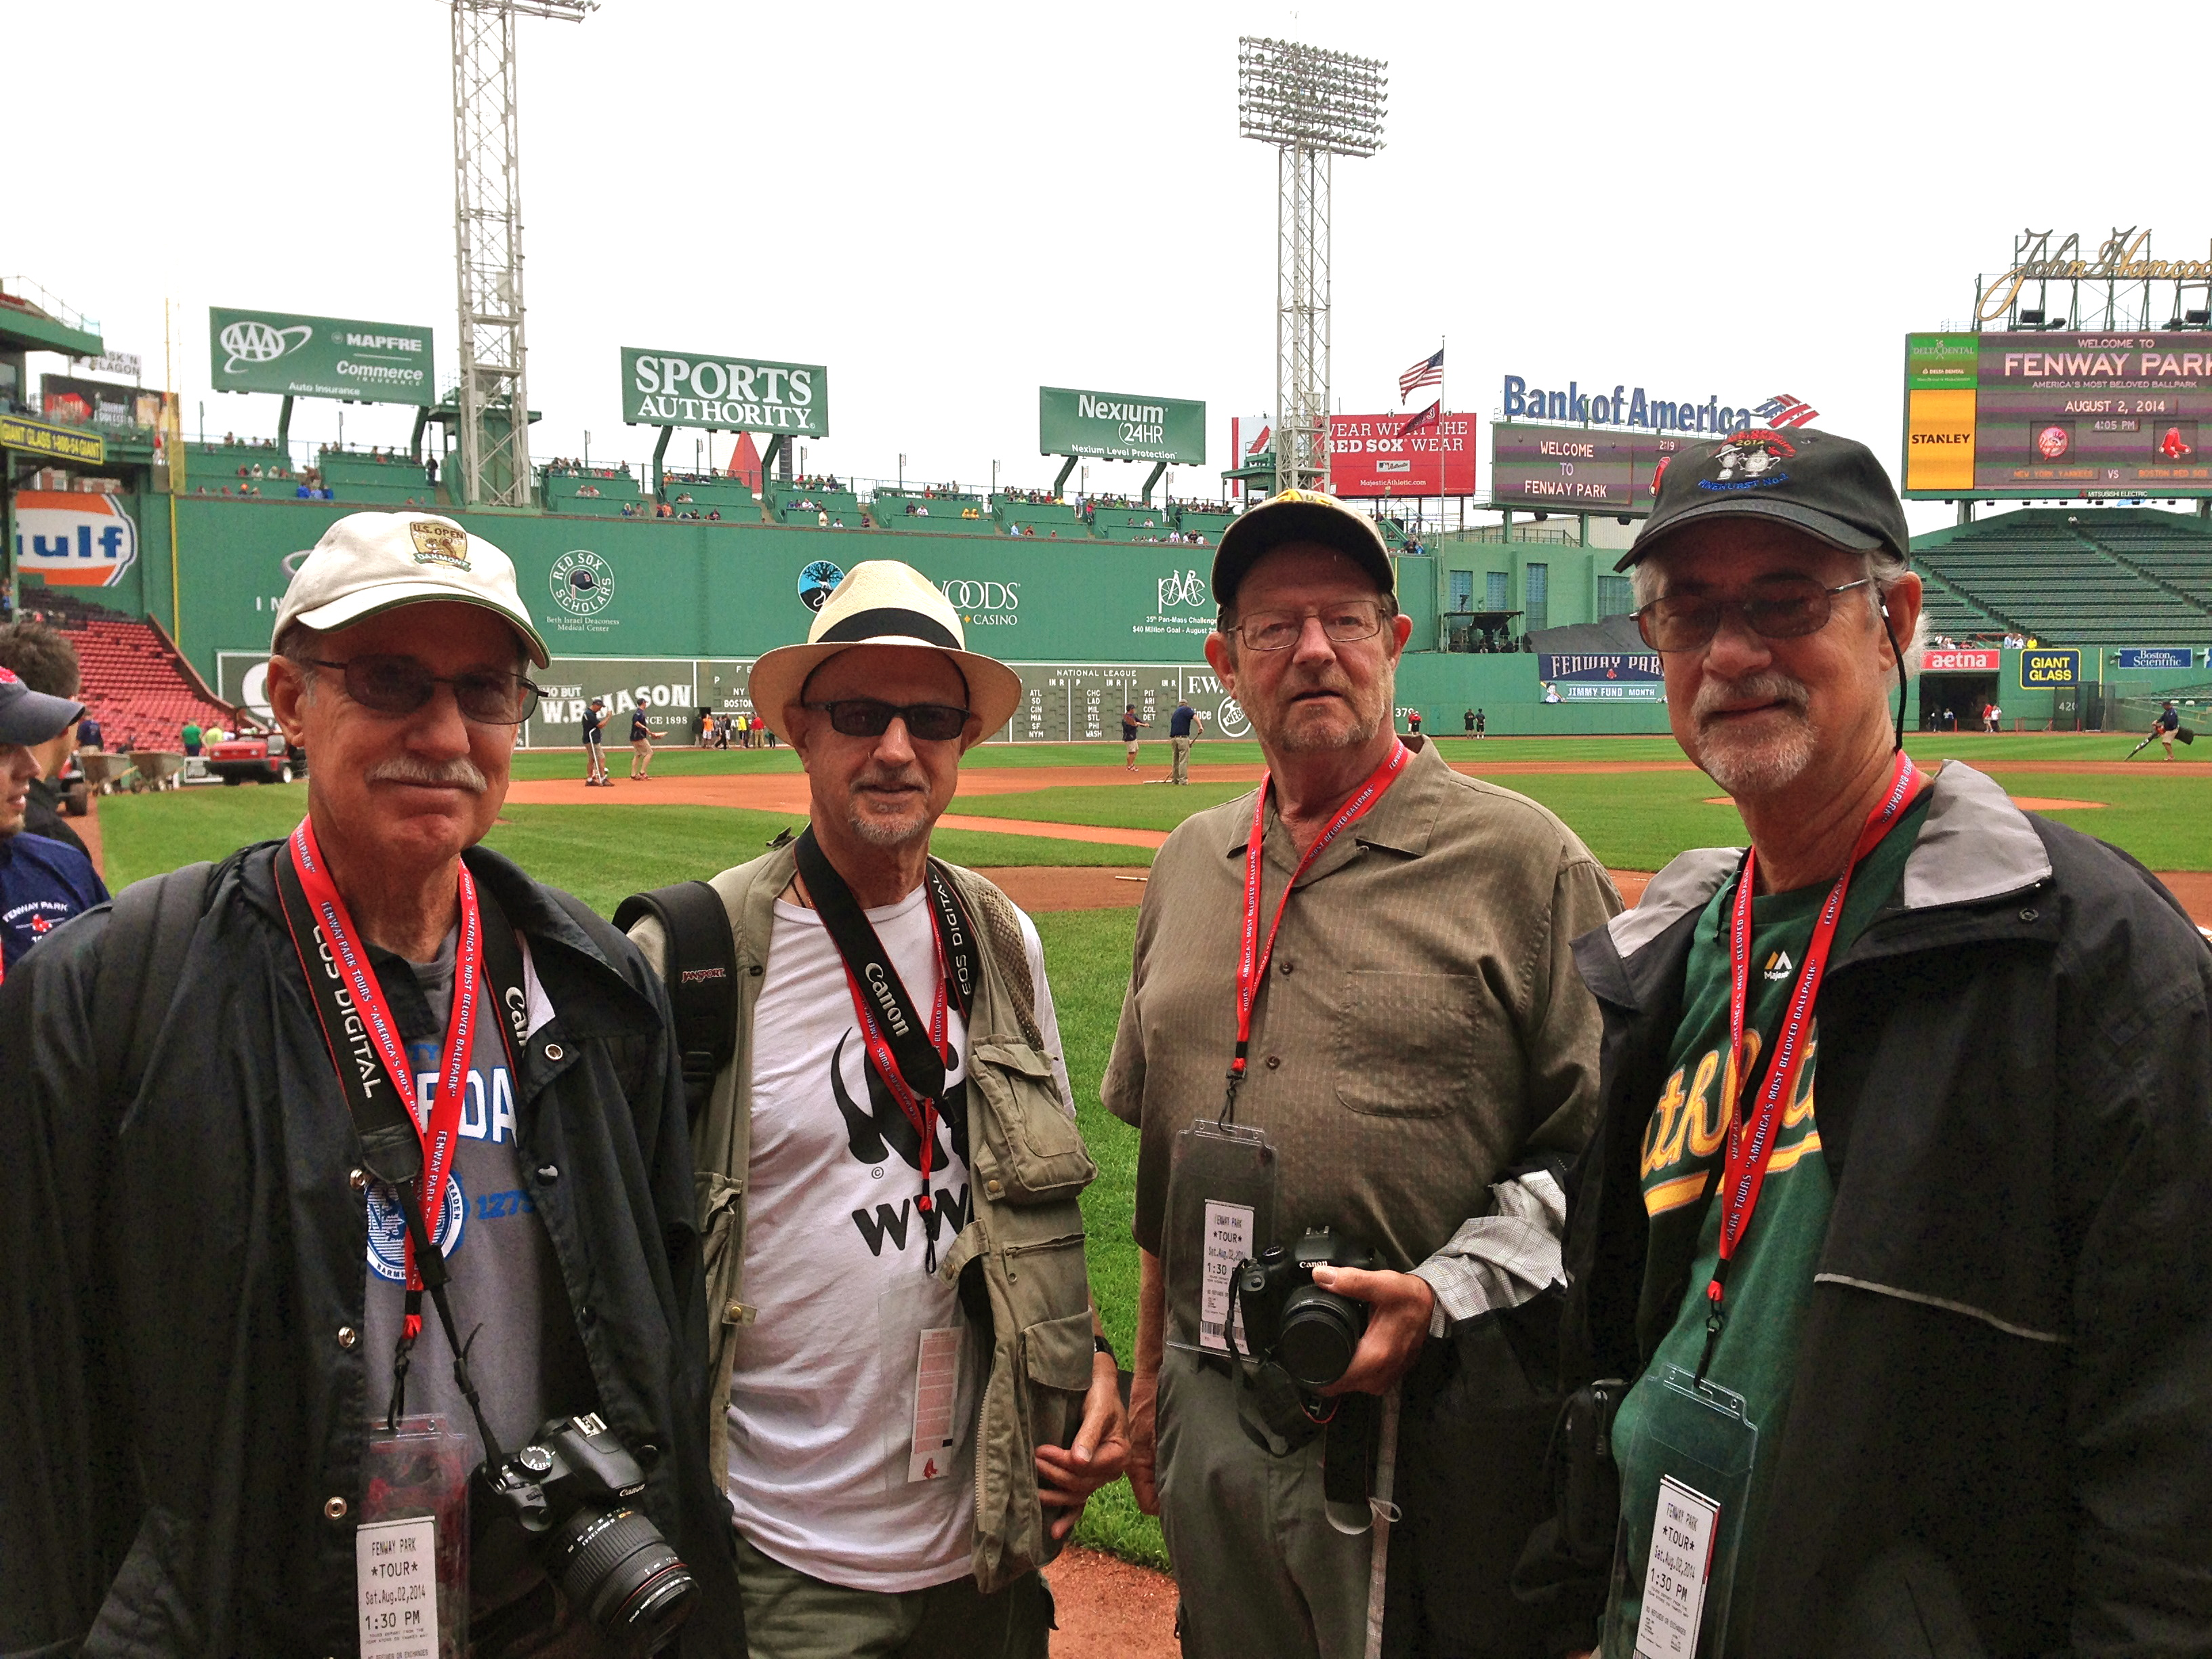 Fenway Park,baseball bucket List,baseball stadium tour